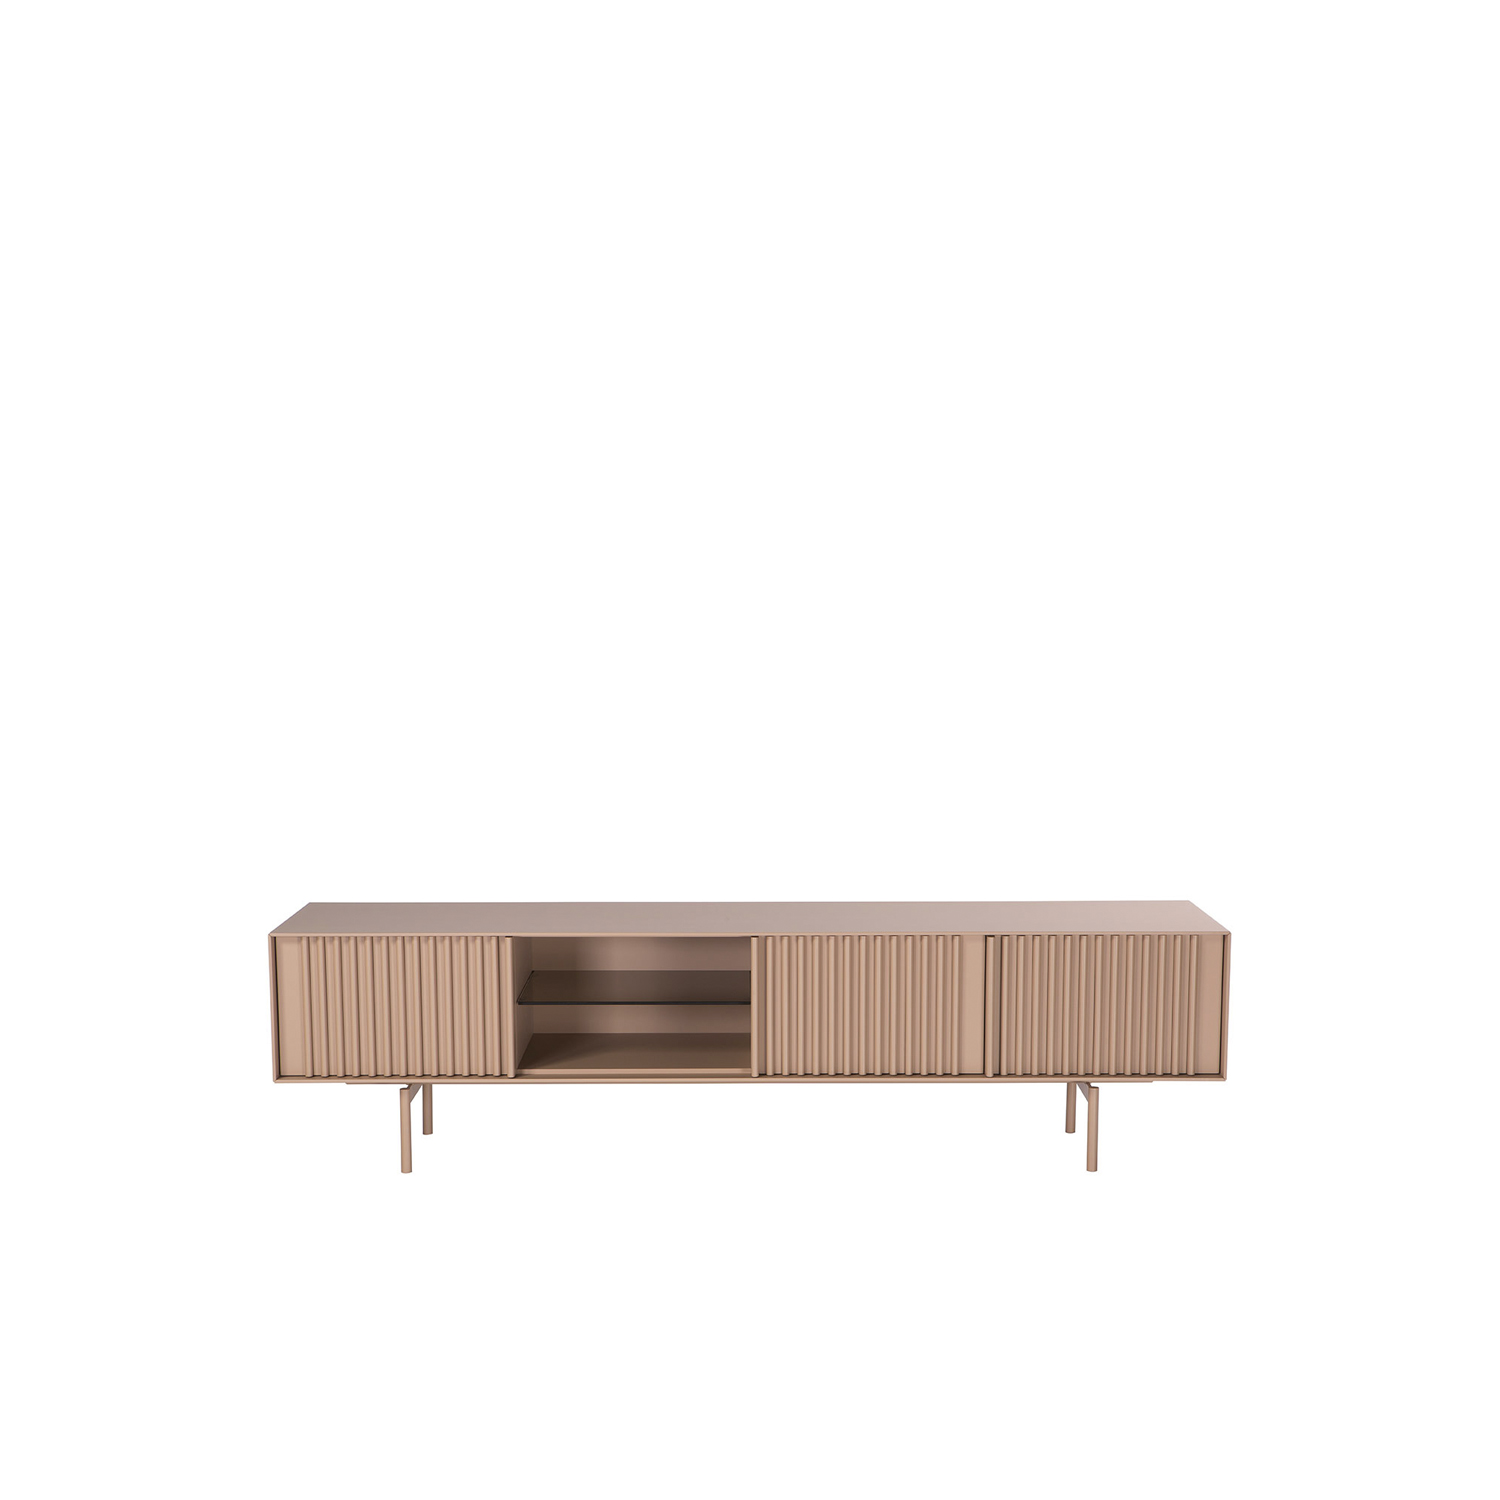 Ka-Bera 005 Sideboard - T.V. unit in various sizes - sideboard with open space with glass shelf and 3 doors.